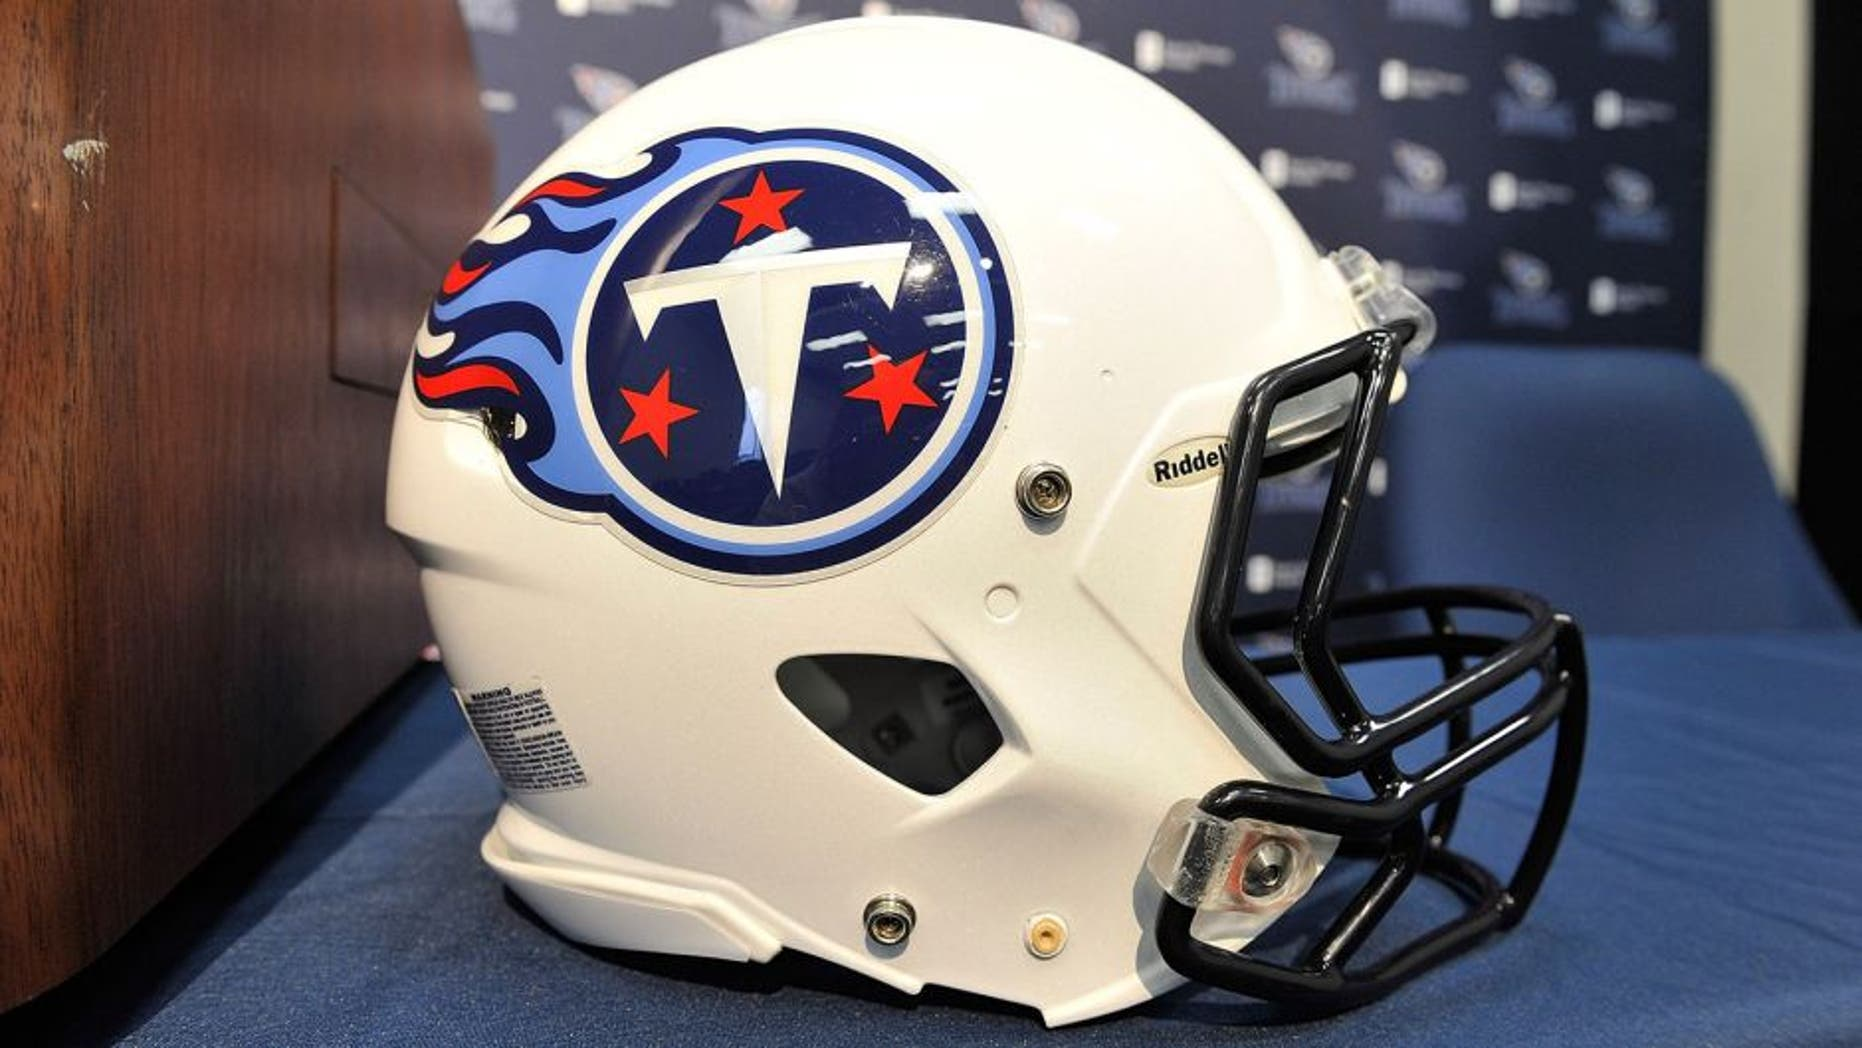 NASHVILLE, TN - JANUARY 14: A close up of a helmet of the Tennessee Titans rests on a table during a press conference at the Saint Thomas Sports Park on January 14, 2014 in Nashville, Tennessee. (Photo by Frederick Breedon/Getty Images)